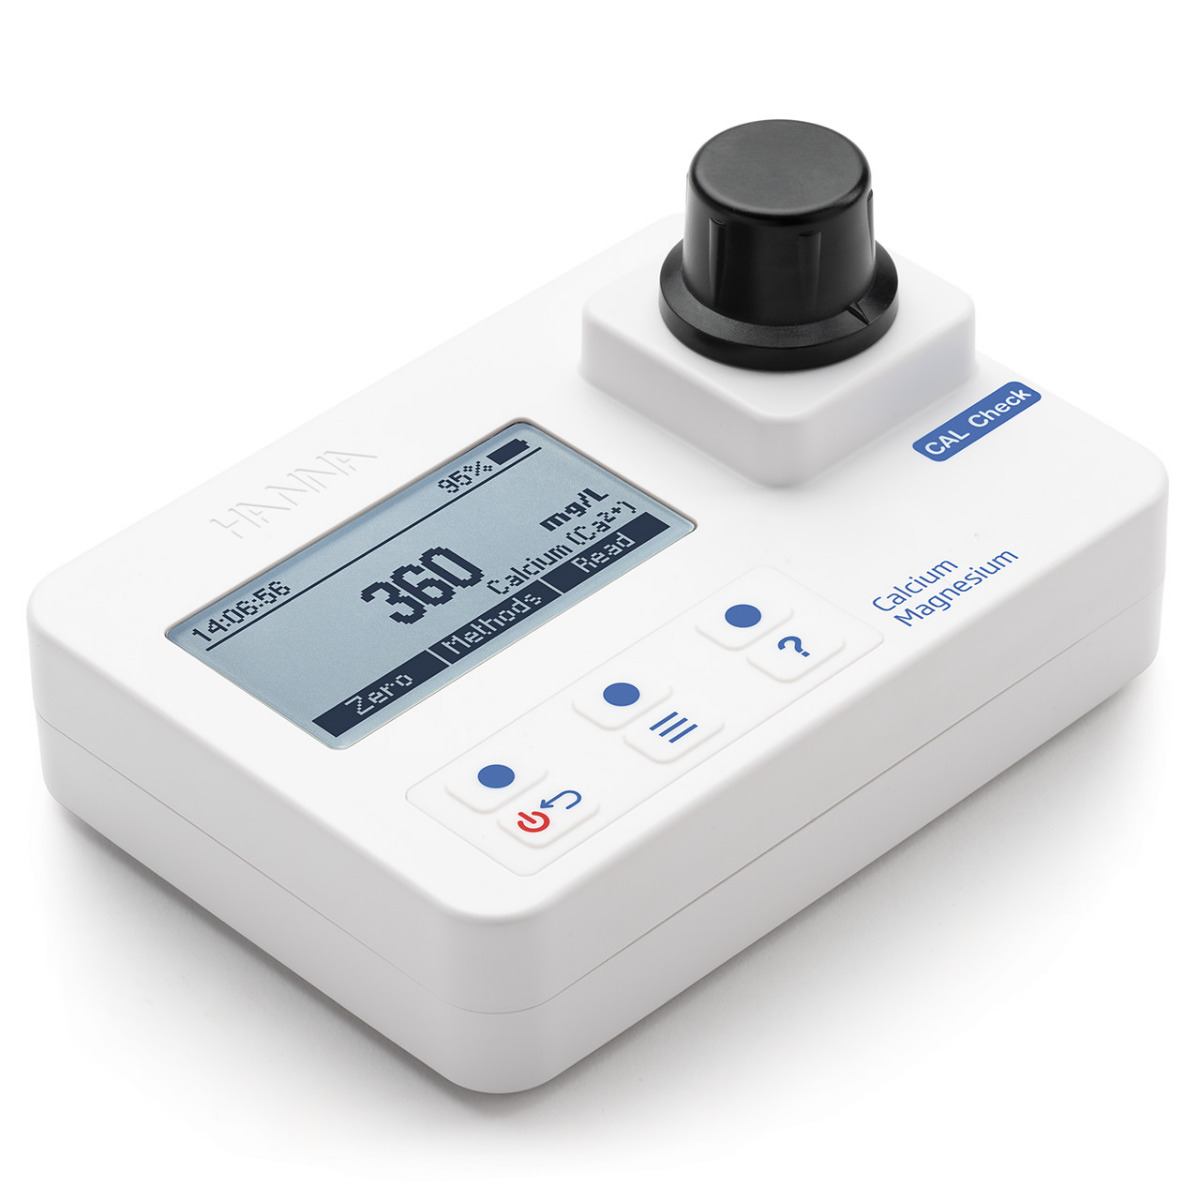 Calcium and Magnesium Portable Photometer with CAL Check – HI97752